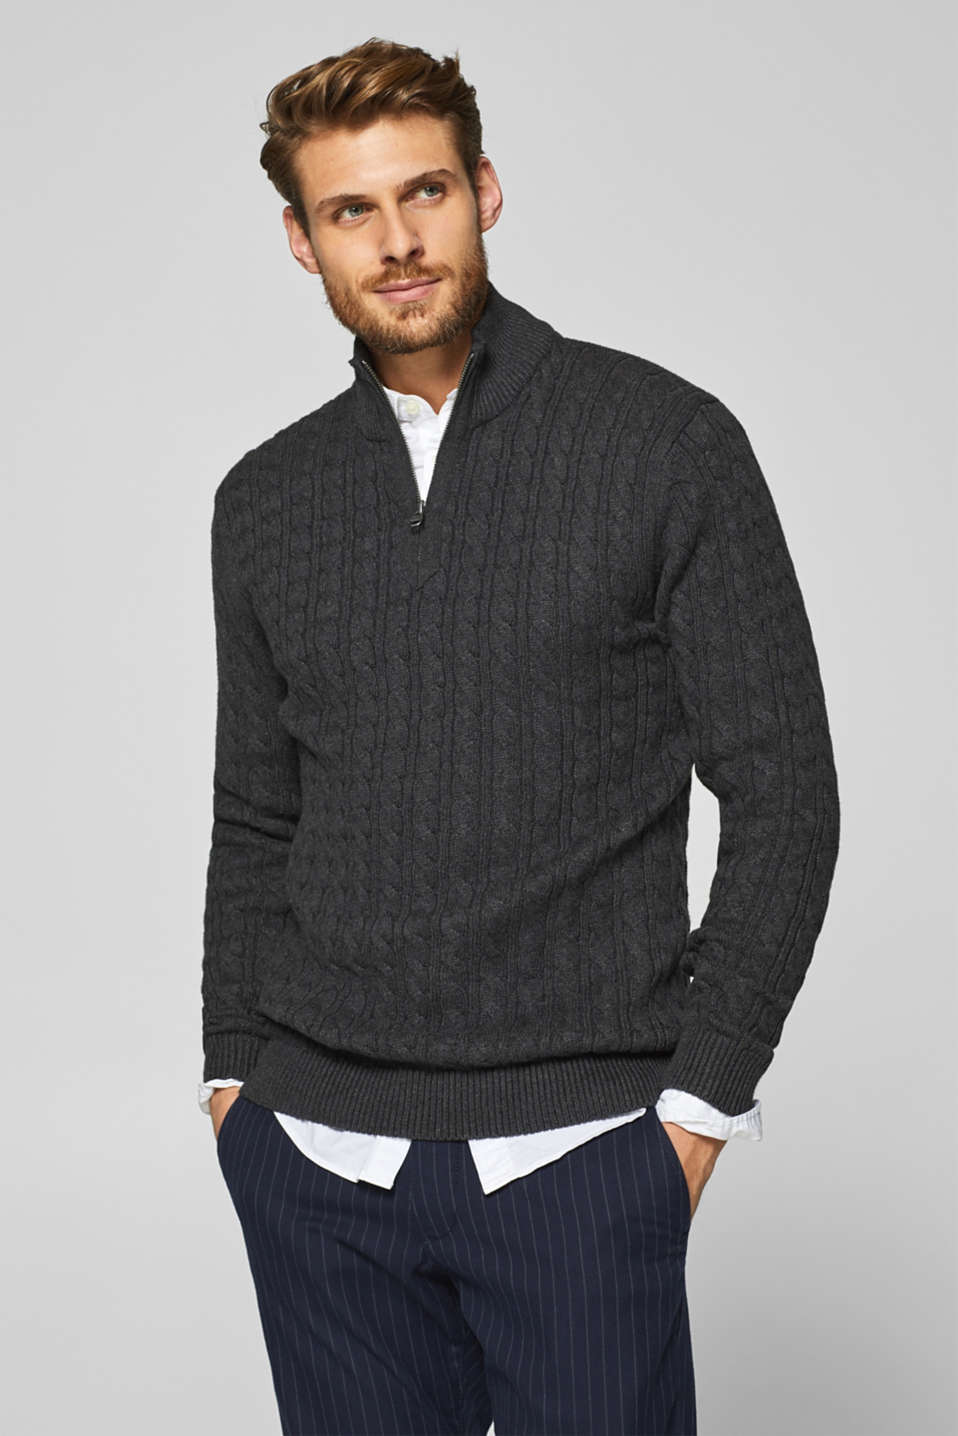 Esprit - Cable knit jumper in 100% cotton